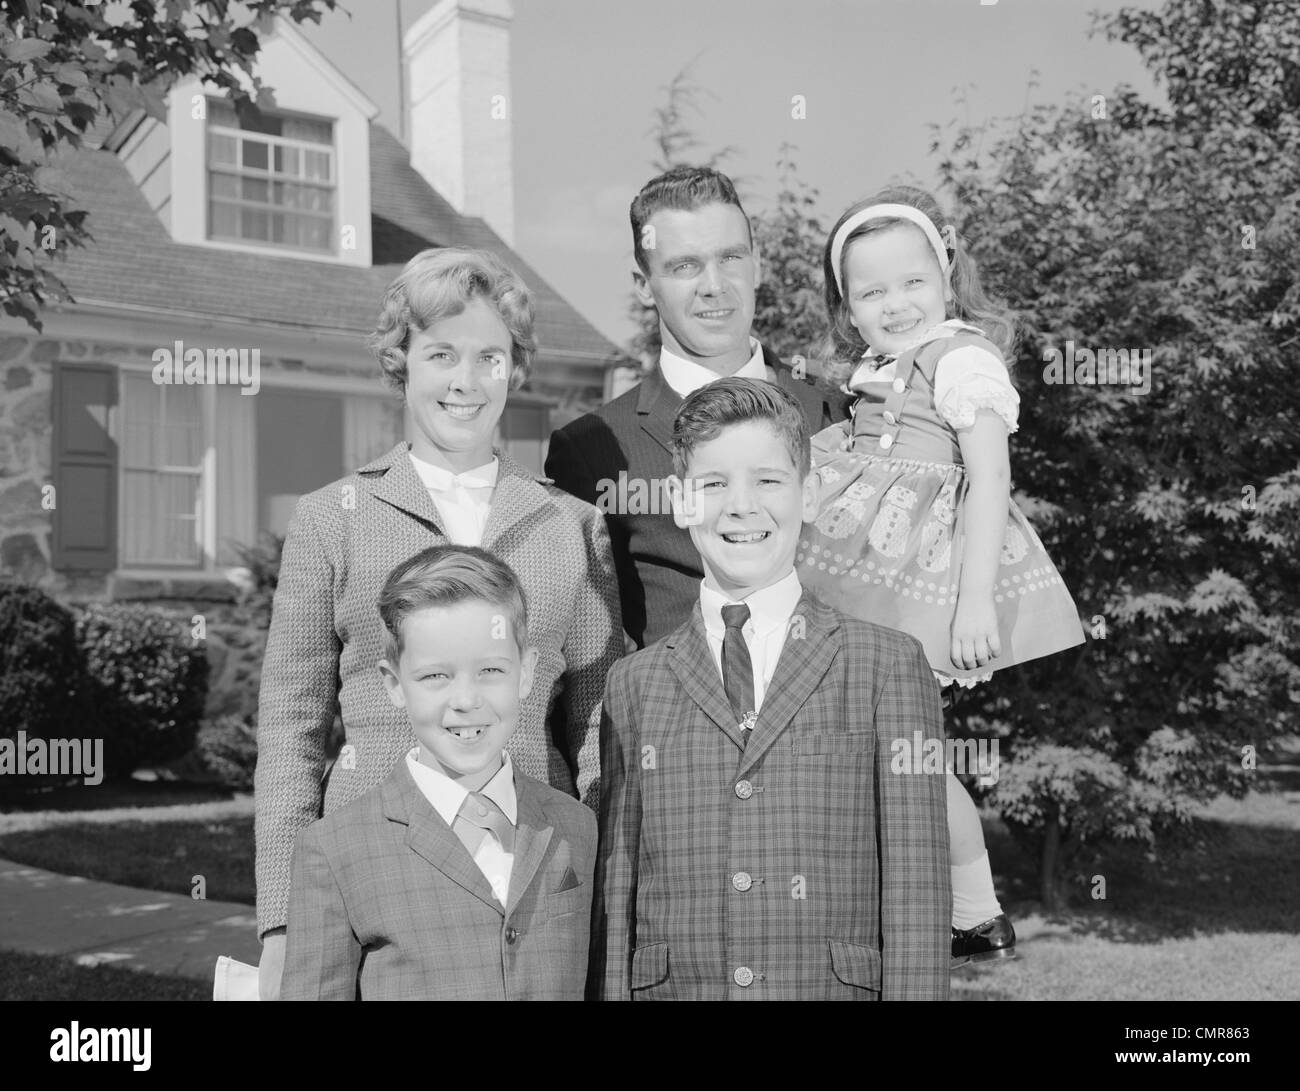 1960s FAMILY PORTRAIT FATHER MOTHER TWO SONS AND DAUGHTER IN FRONT OF SUBURBAN HOUSE LOOKING AT CAMERA - Stock Image